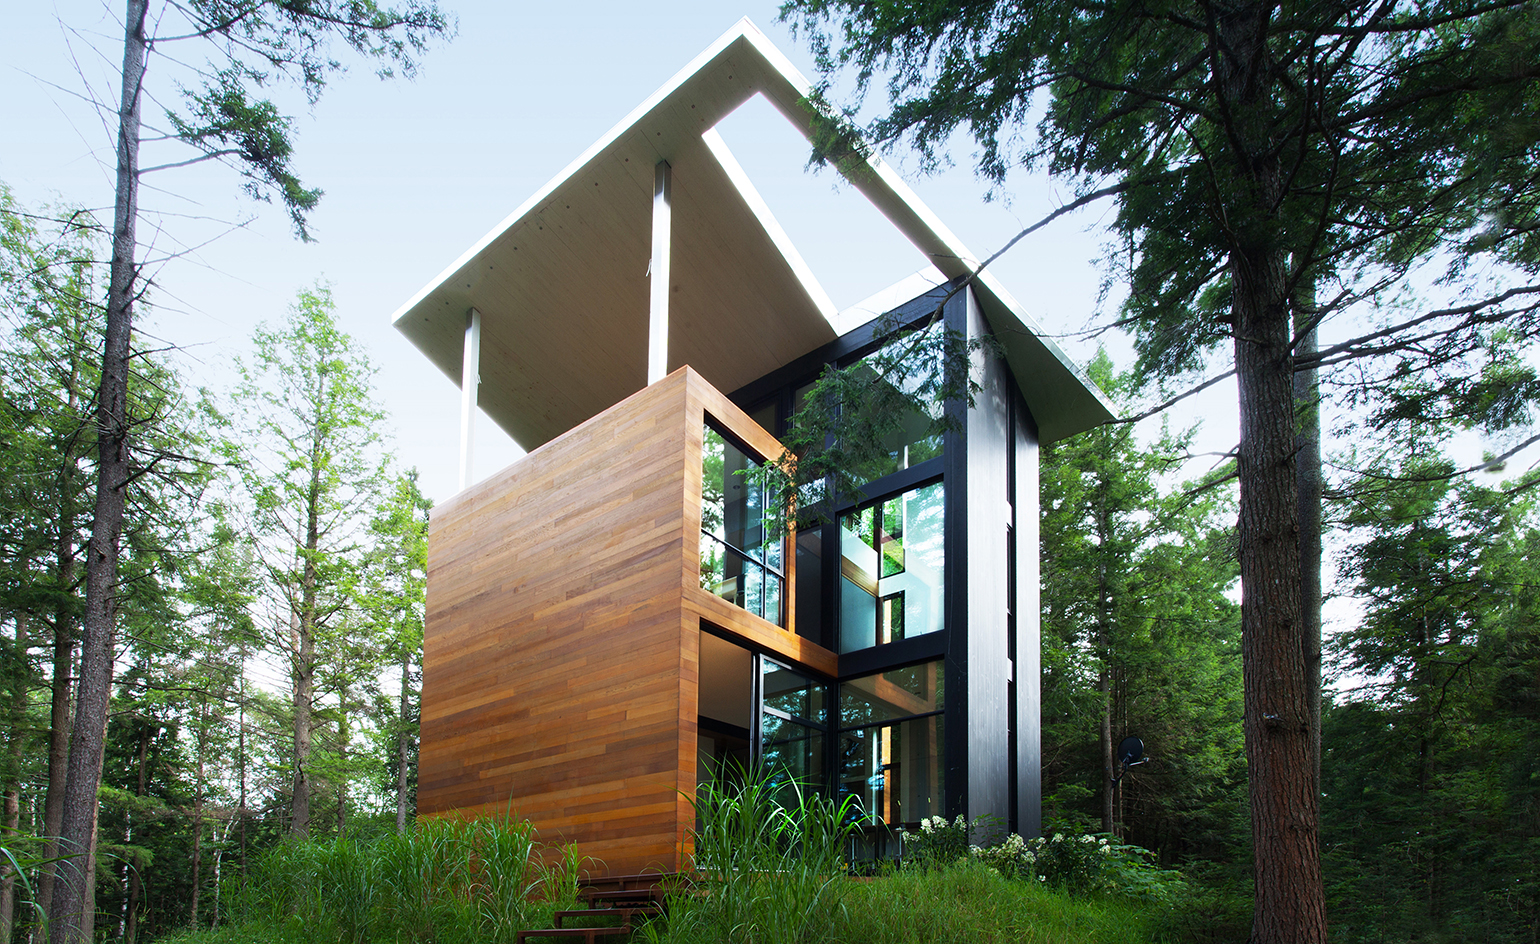 Yh2 create house for sculptor jacek jarnuszkiewicz for Home architecture firms